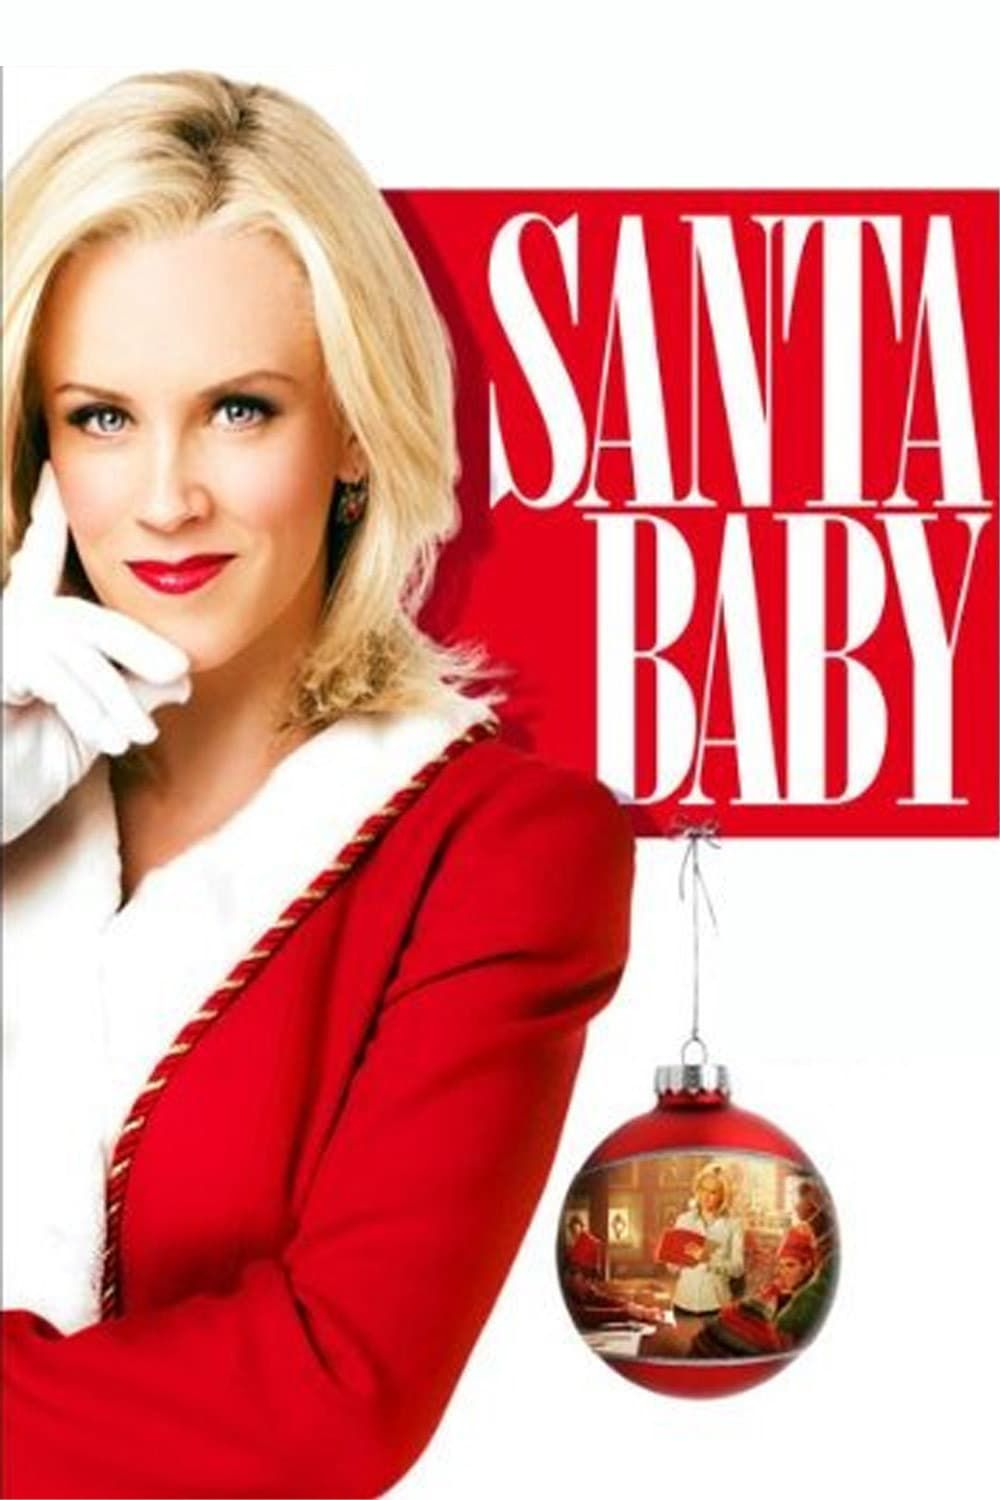 .Santa Baby FULL MOVIE Streaming Online in HD720p Video